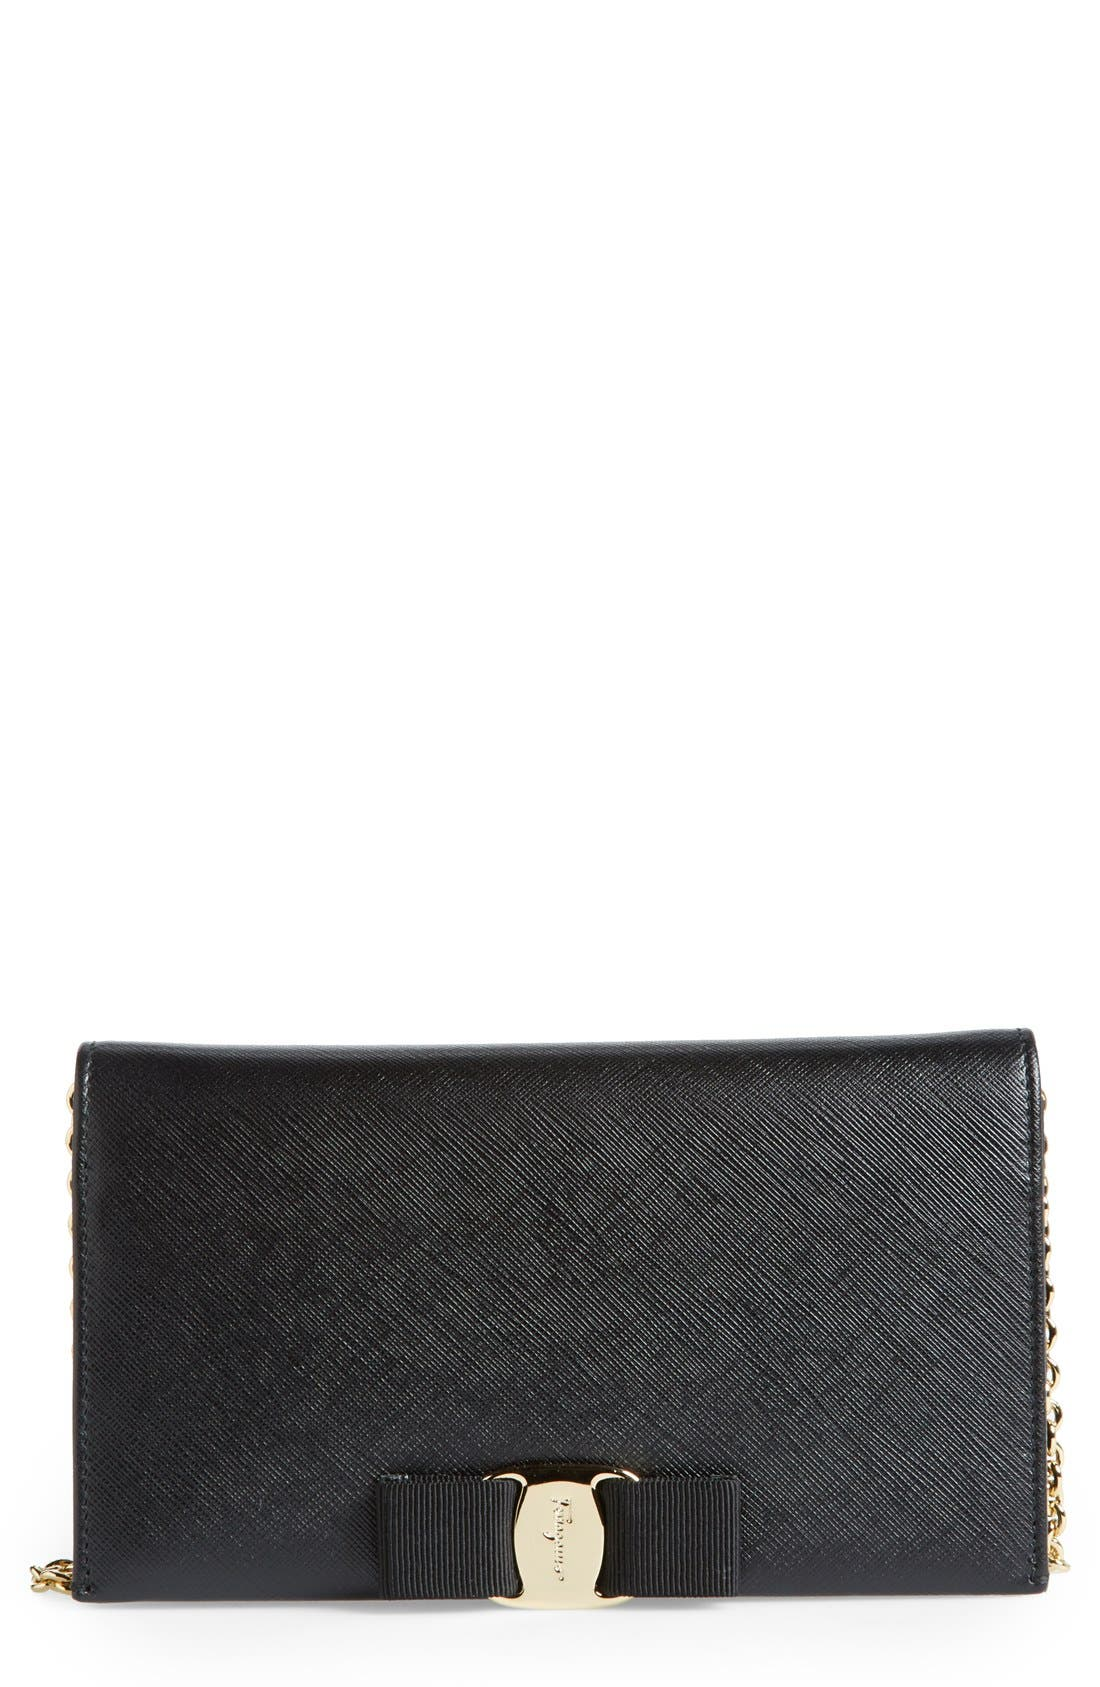 Main Image - Salavatore Ferragamo 'Miss Vara' Leather Wallet on a Chain